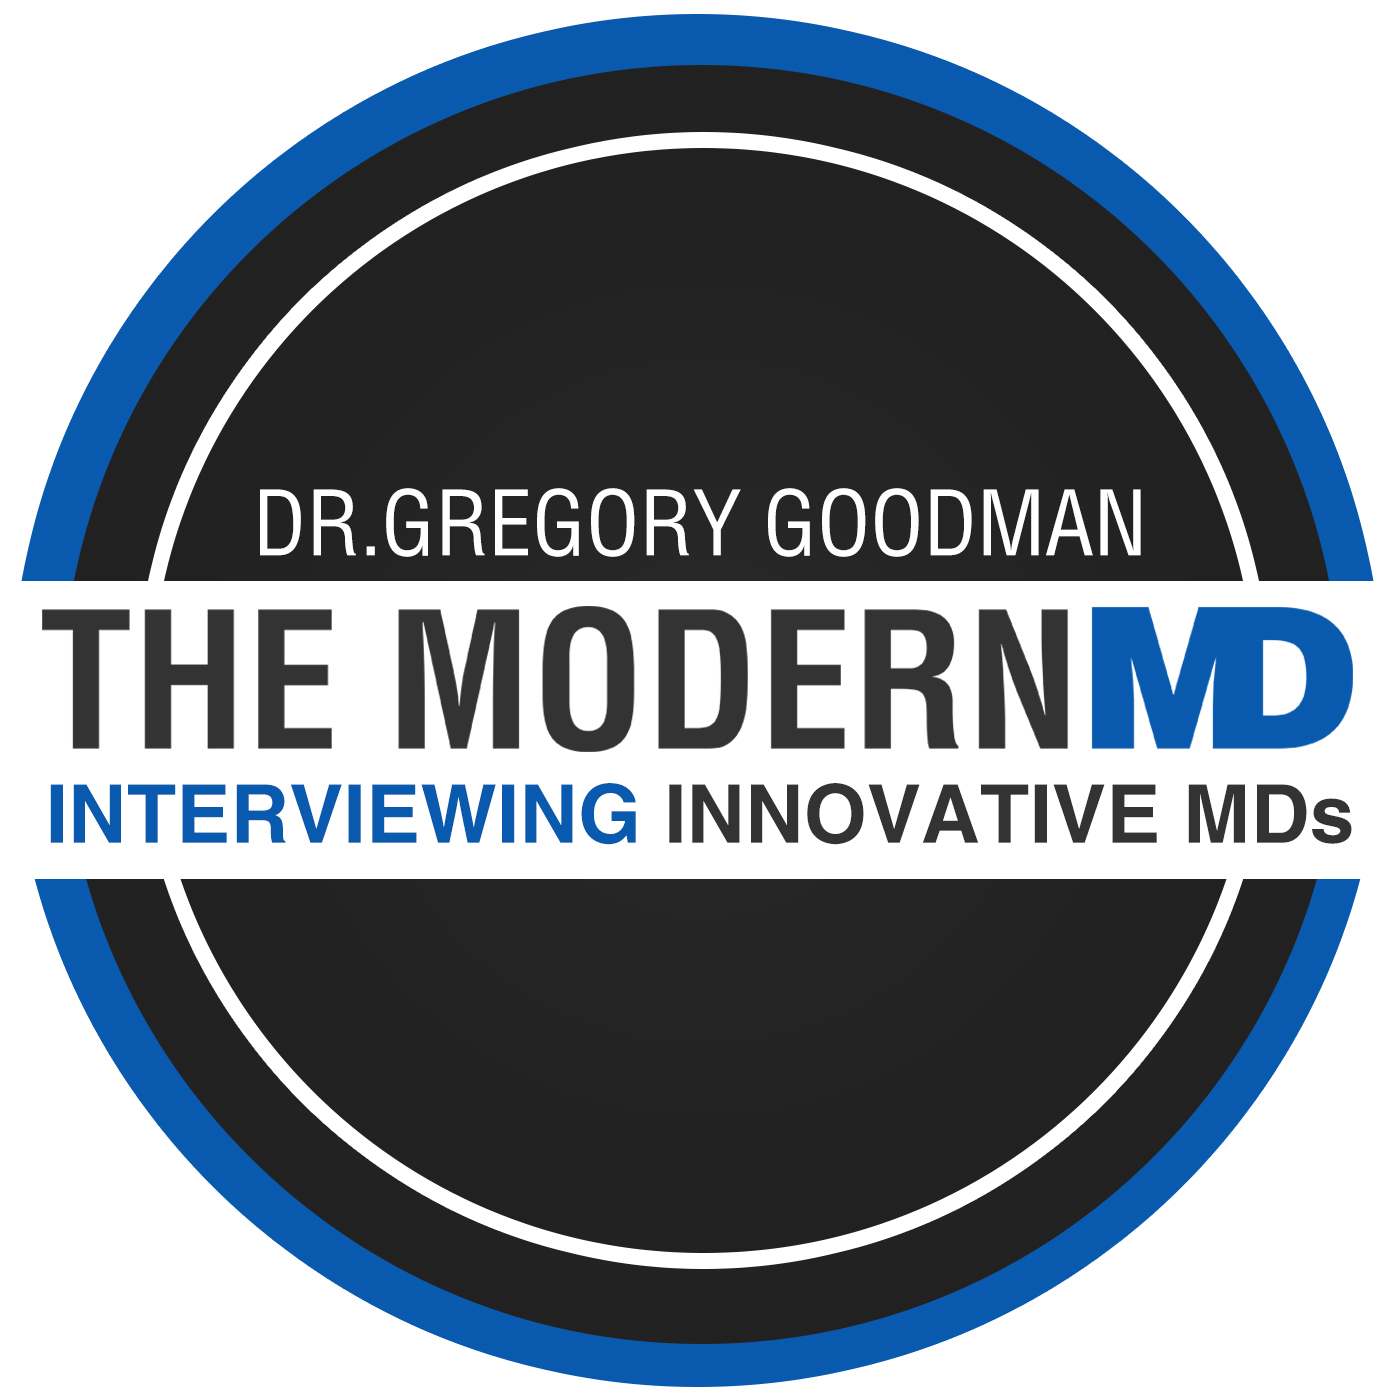 The Modern MD